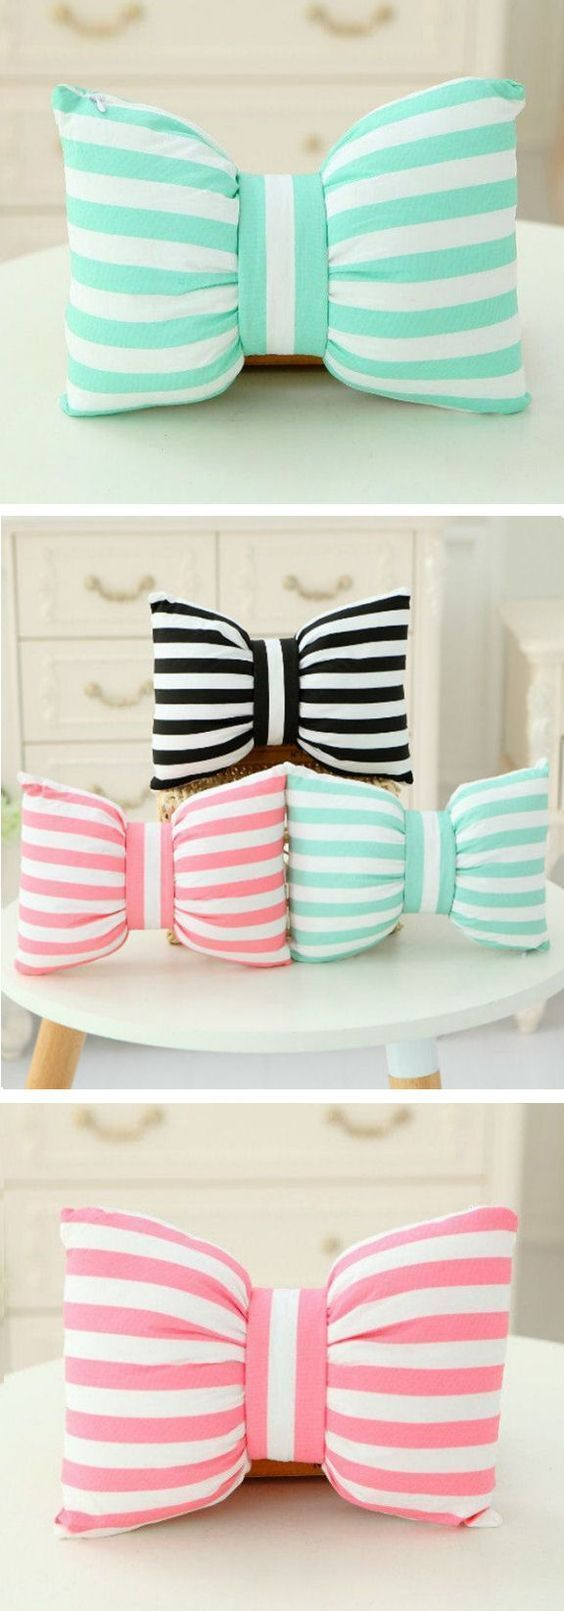 bow knot pillows                                                                                                                                                                                 More